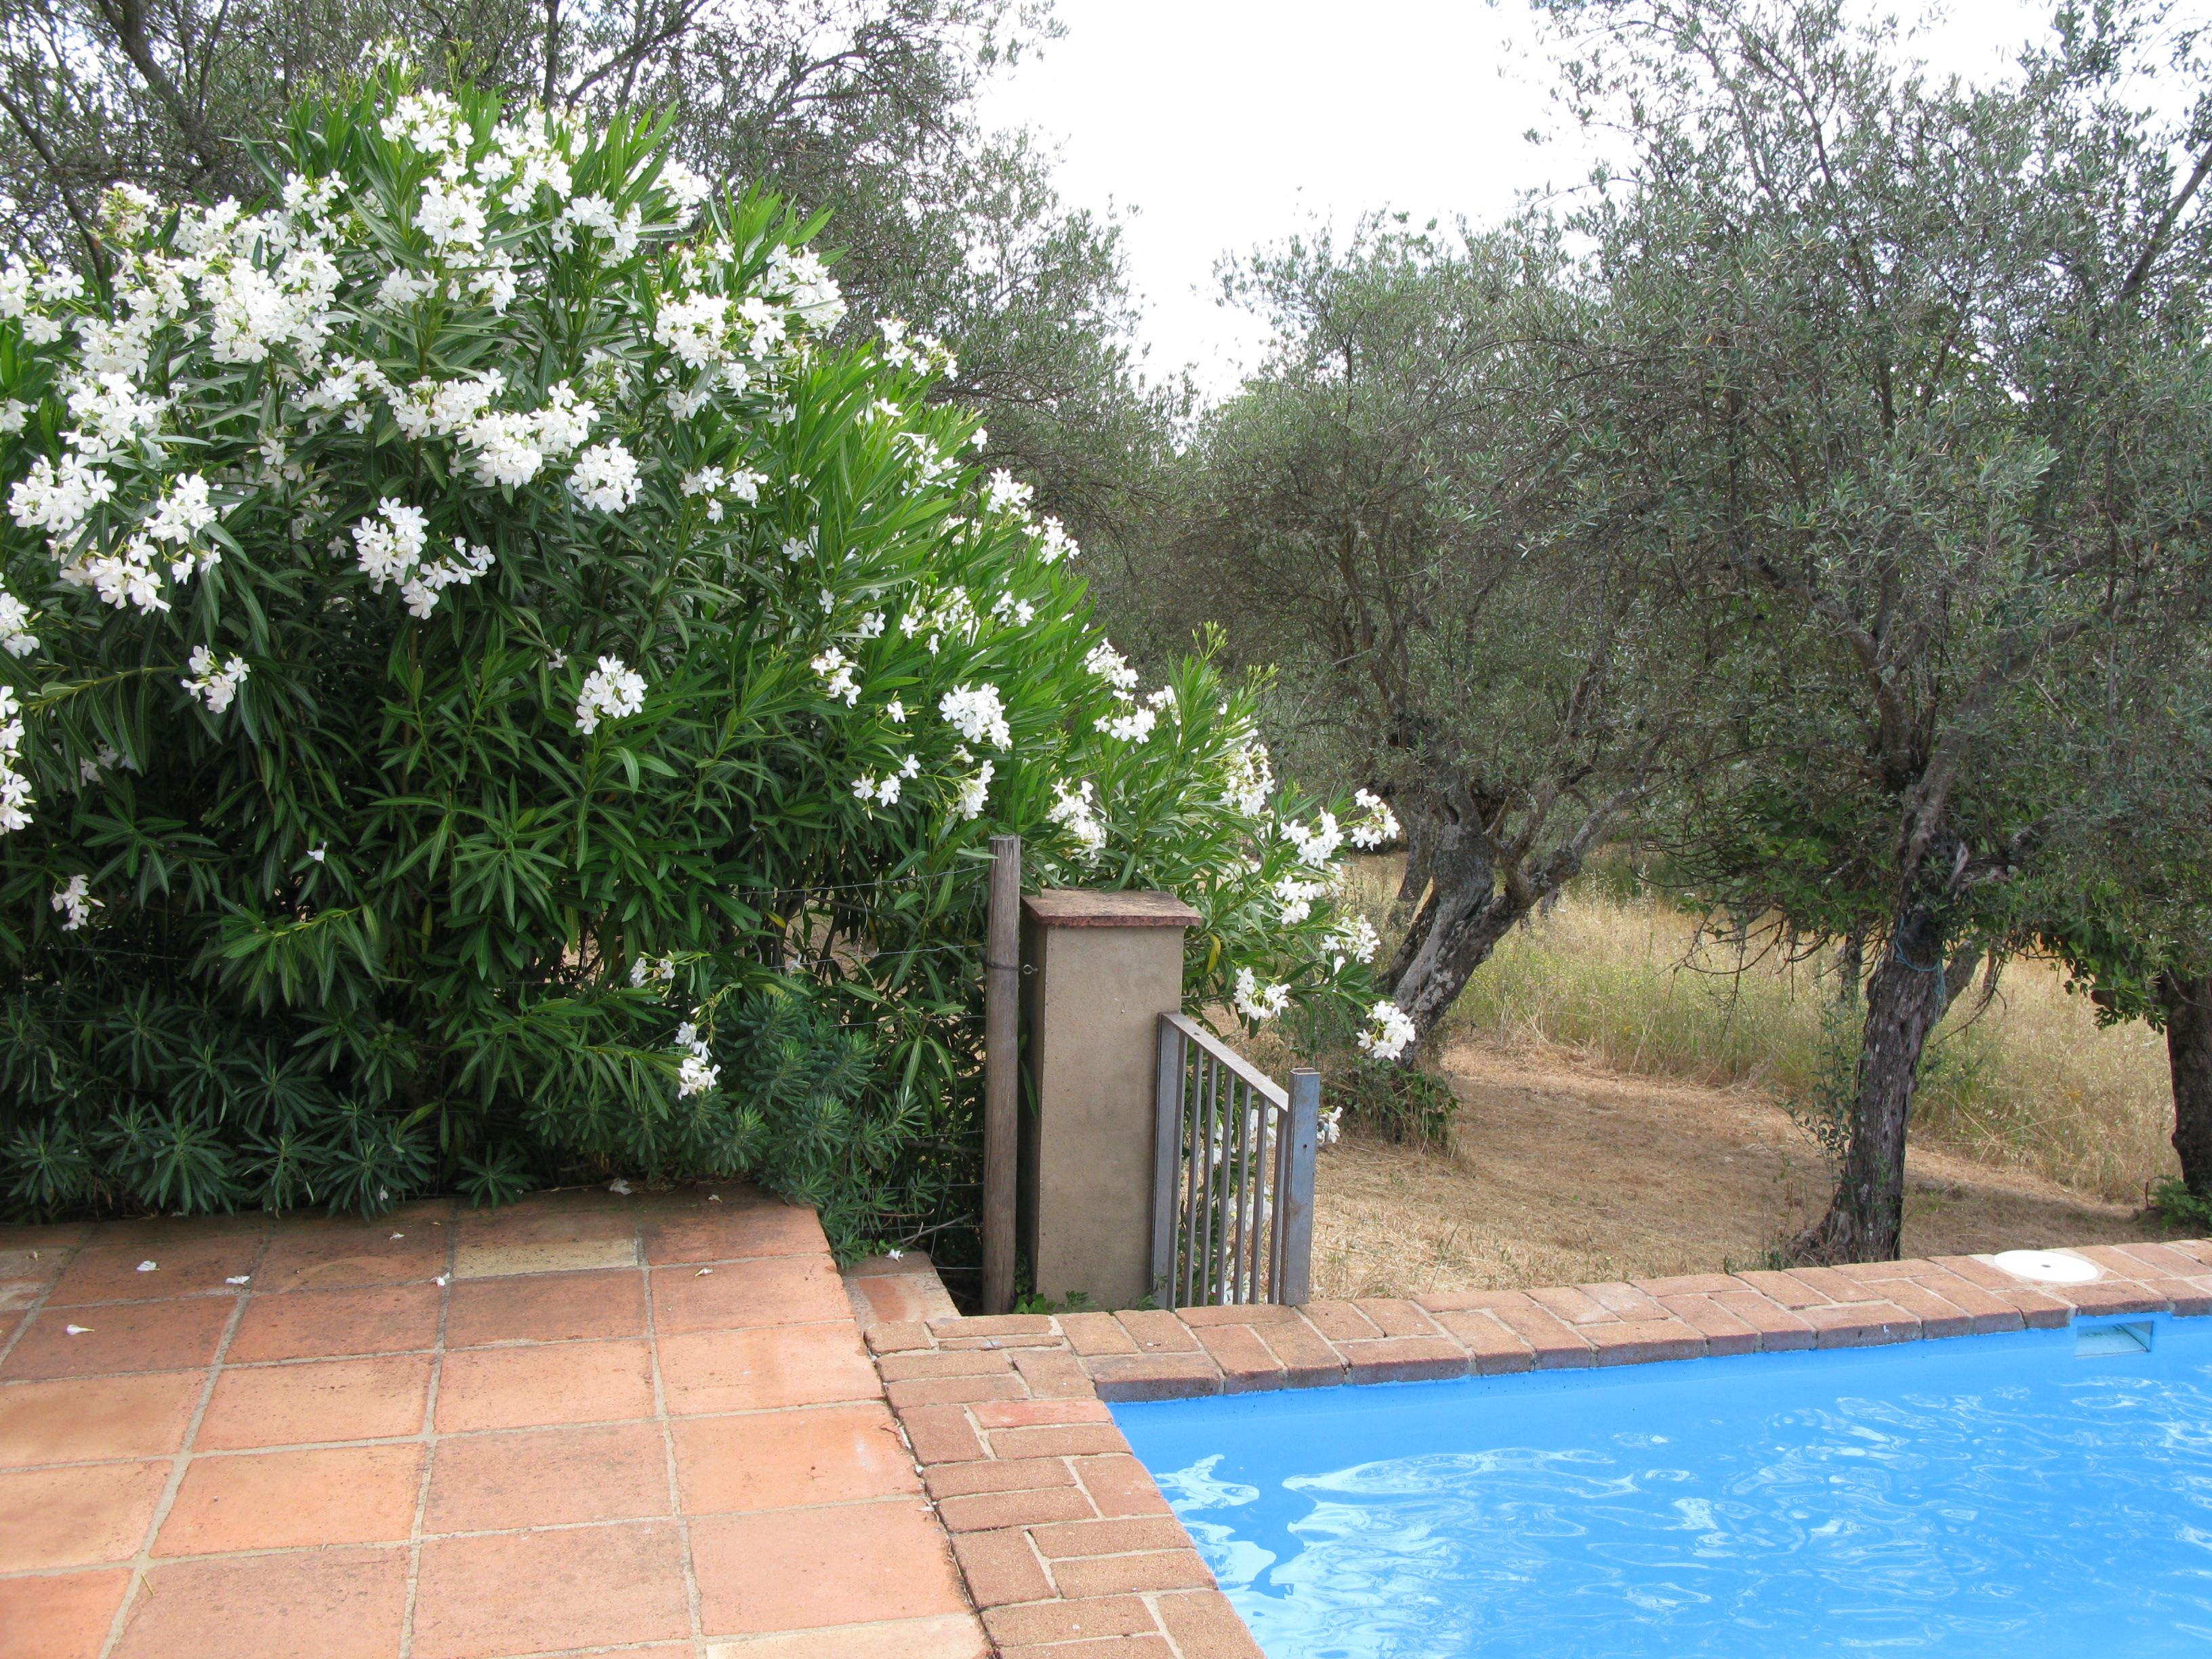 Pool Privacy Ideas downthe pool, privacy is achieveda hedge of white oleander